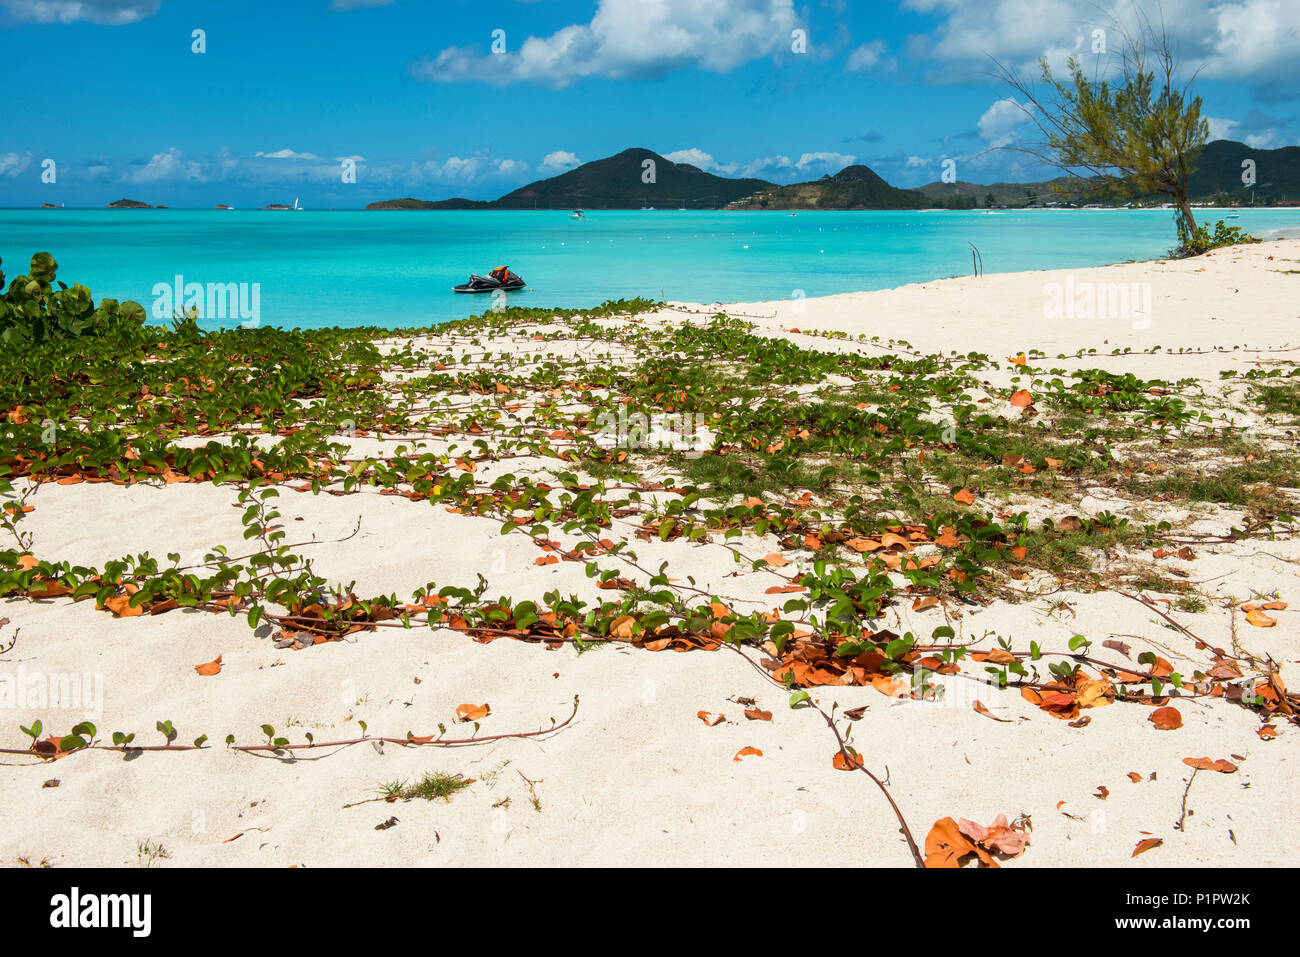 Personal watercraft at Jolly Harbour beach; Antigua and Barbuda - Stock Image